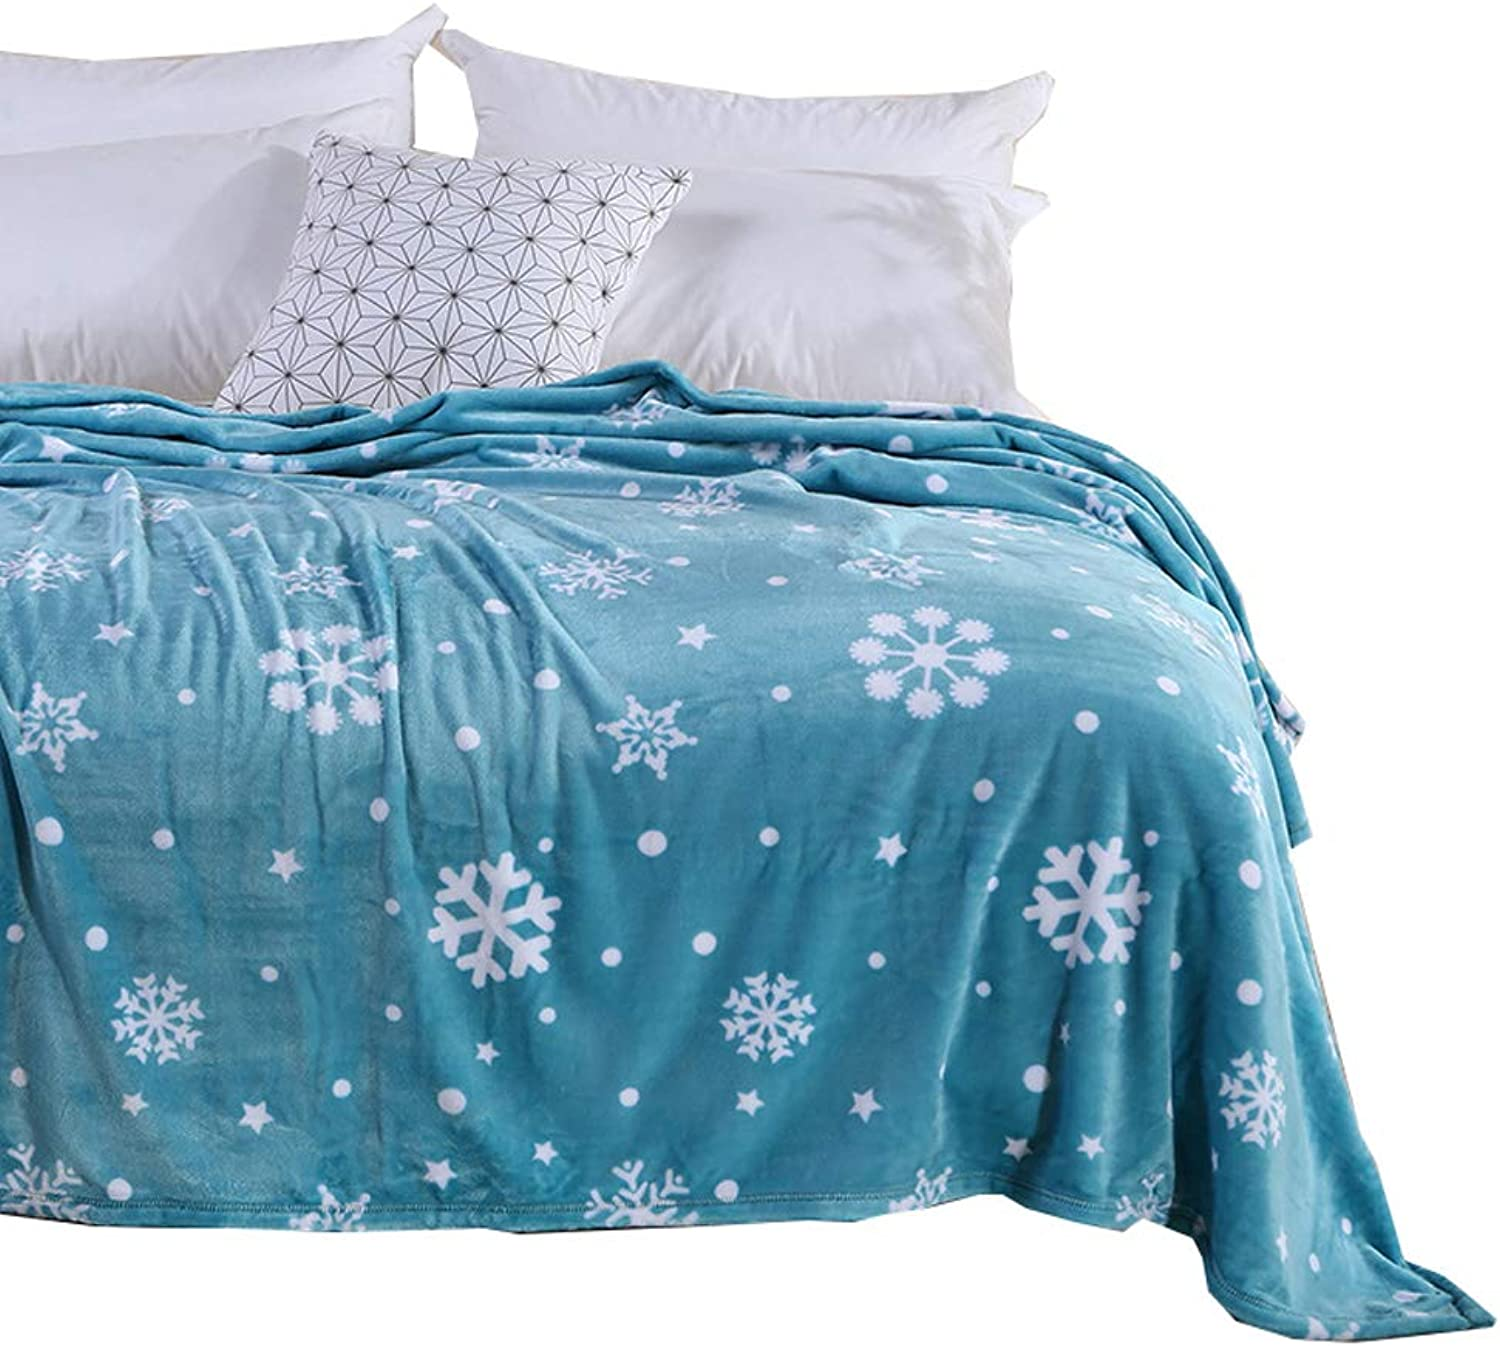 Cotton Blanket Blankets Increase Thicker Blanket Office Nap Blanket Air Conditioning Blanket 150  200cm 180  200cm 200  230cm Formaldehyde-Free Lint-Free Fading (Size   L-150  200cm)